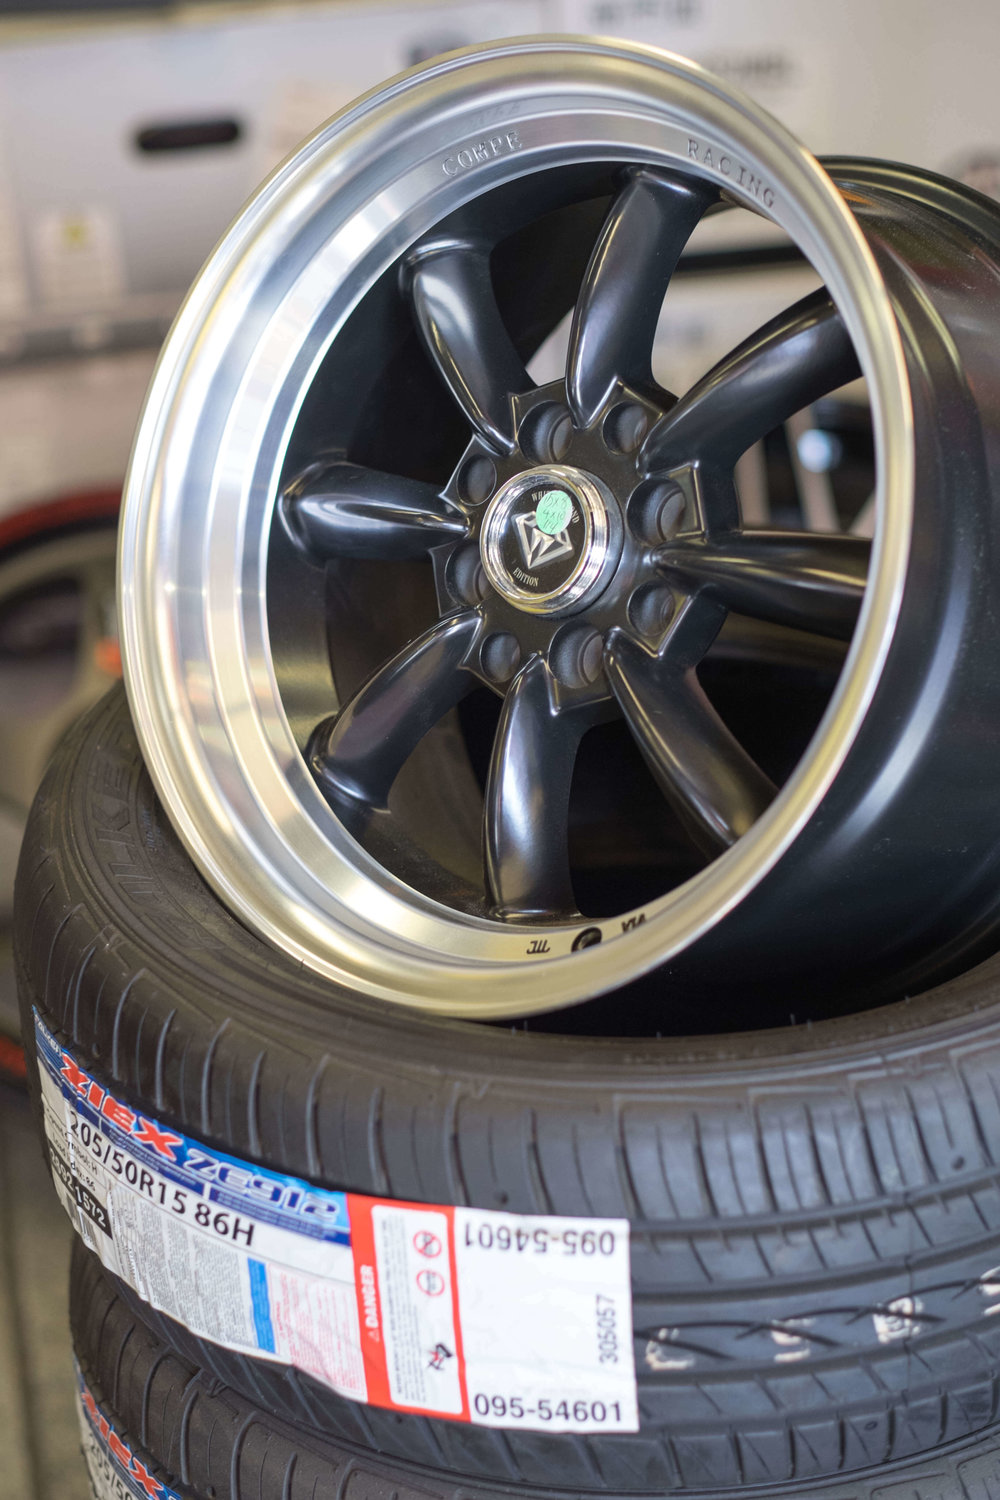 Amazing selection of car wheels and rims in Escondido